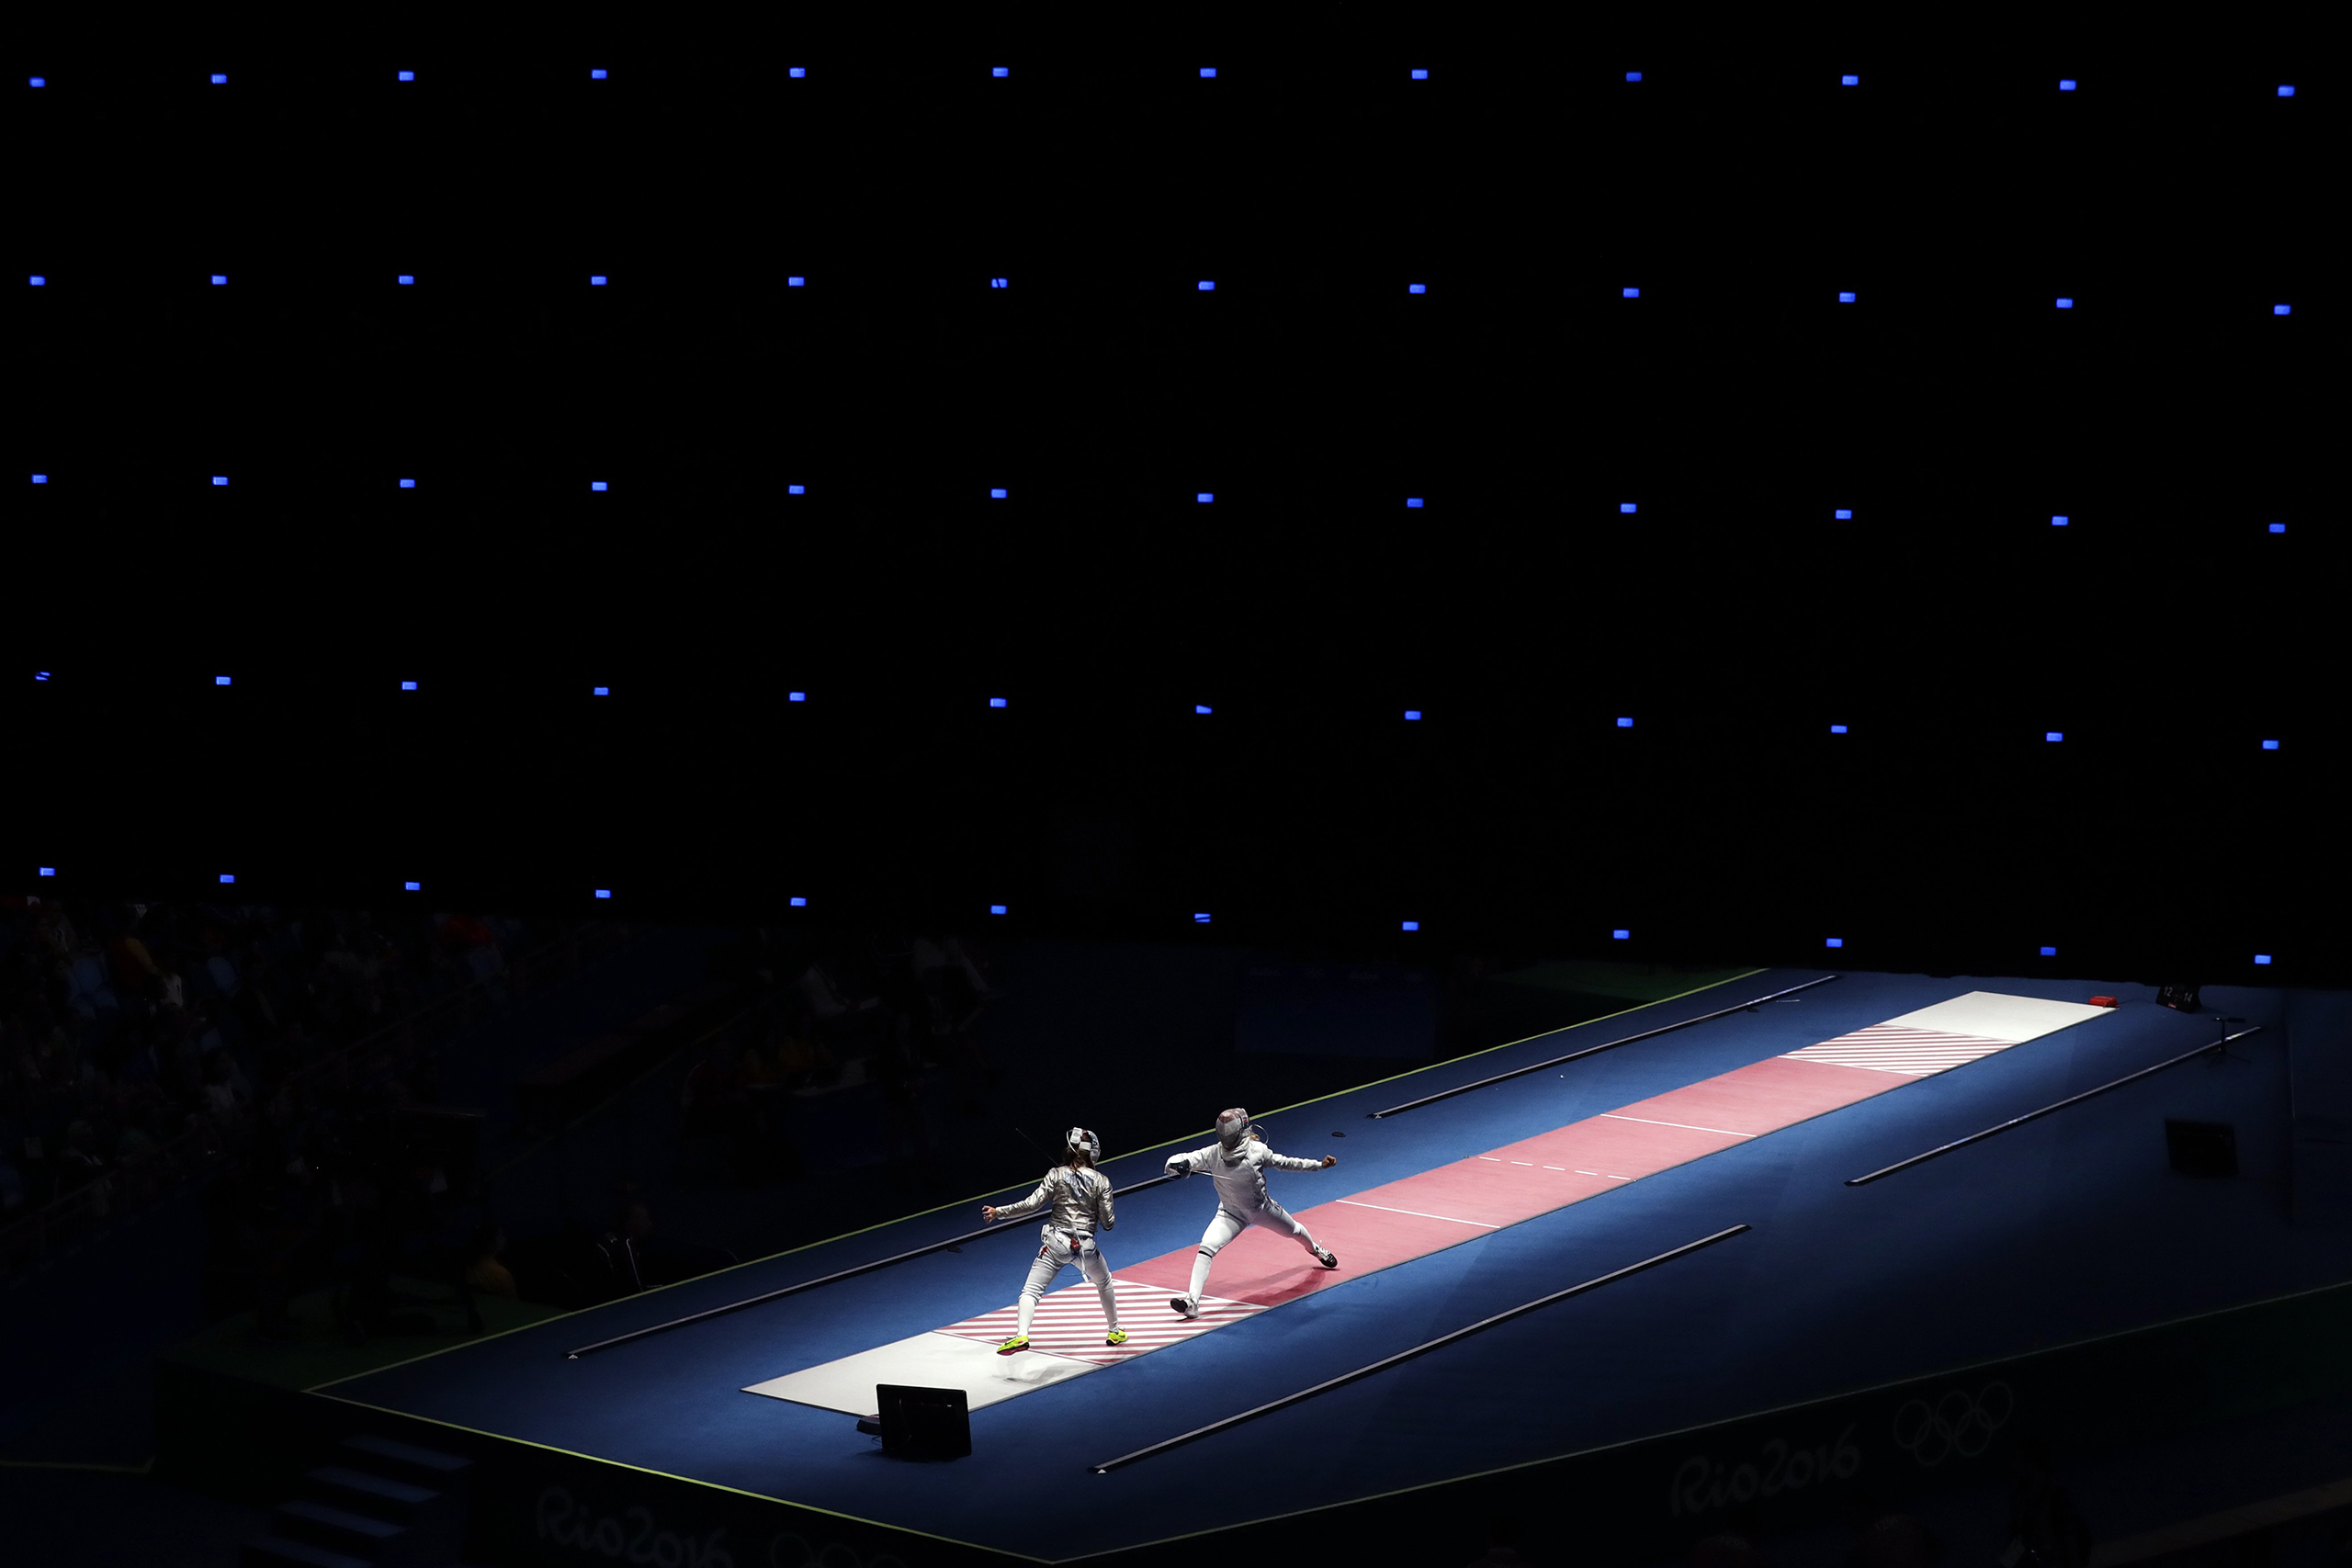 Anna Marton of Hungary, right, fences against Manon Brunet of France during women's saber individual fencing competition in the 2016 Summer Olympics in Rio de Janeiro, Brazil, Aug. 8, 2016.